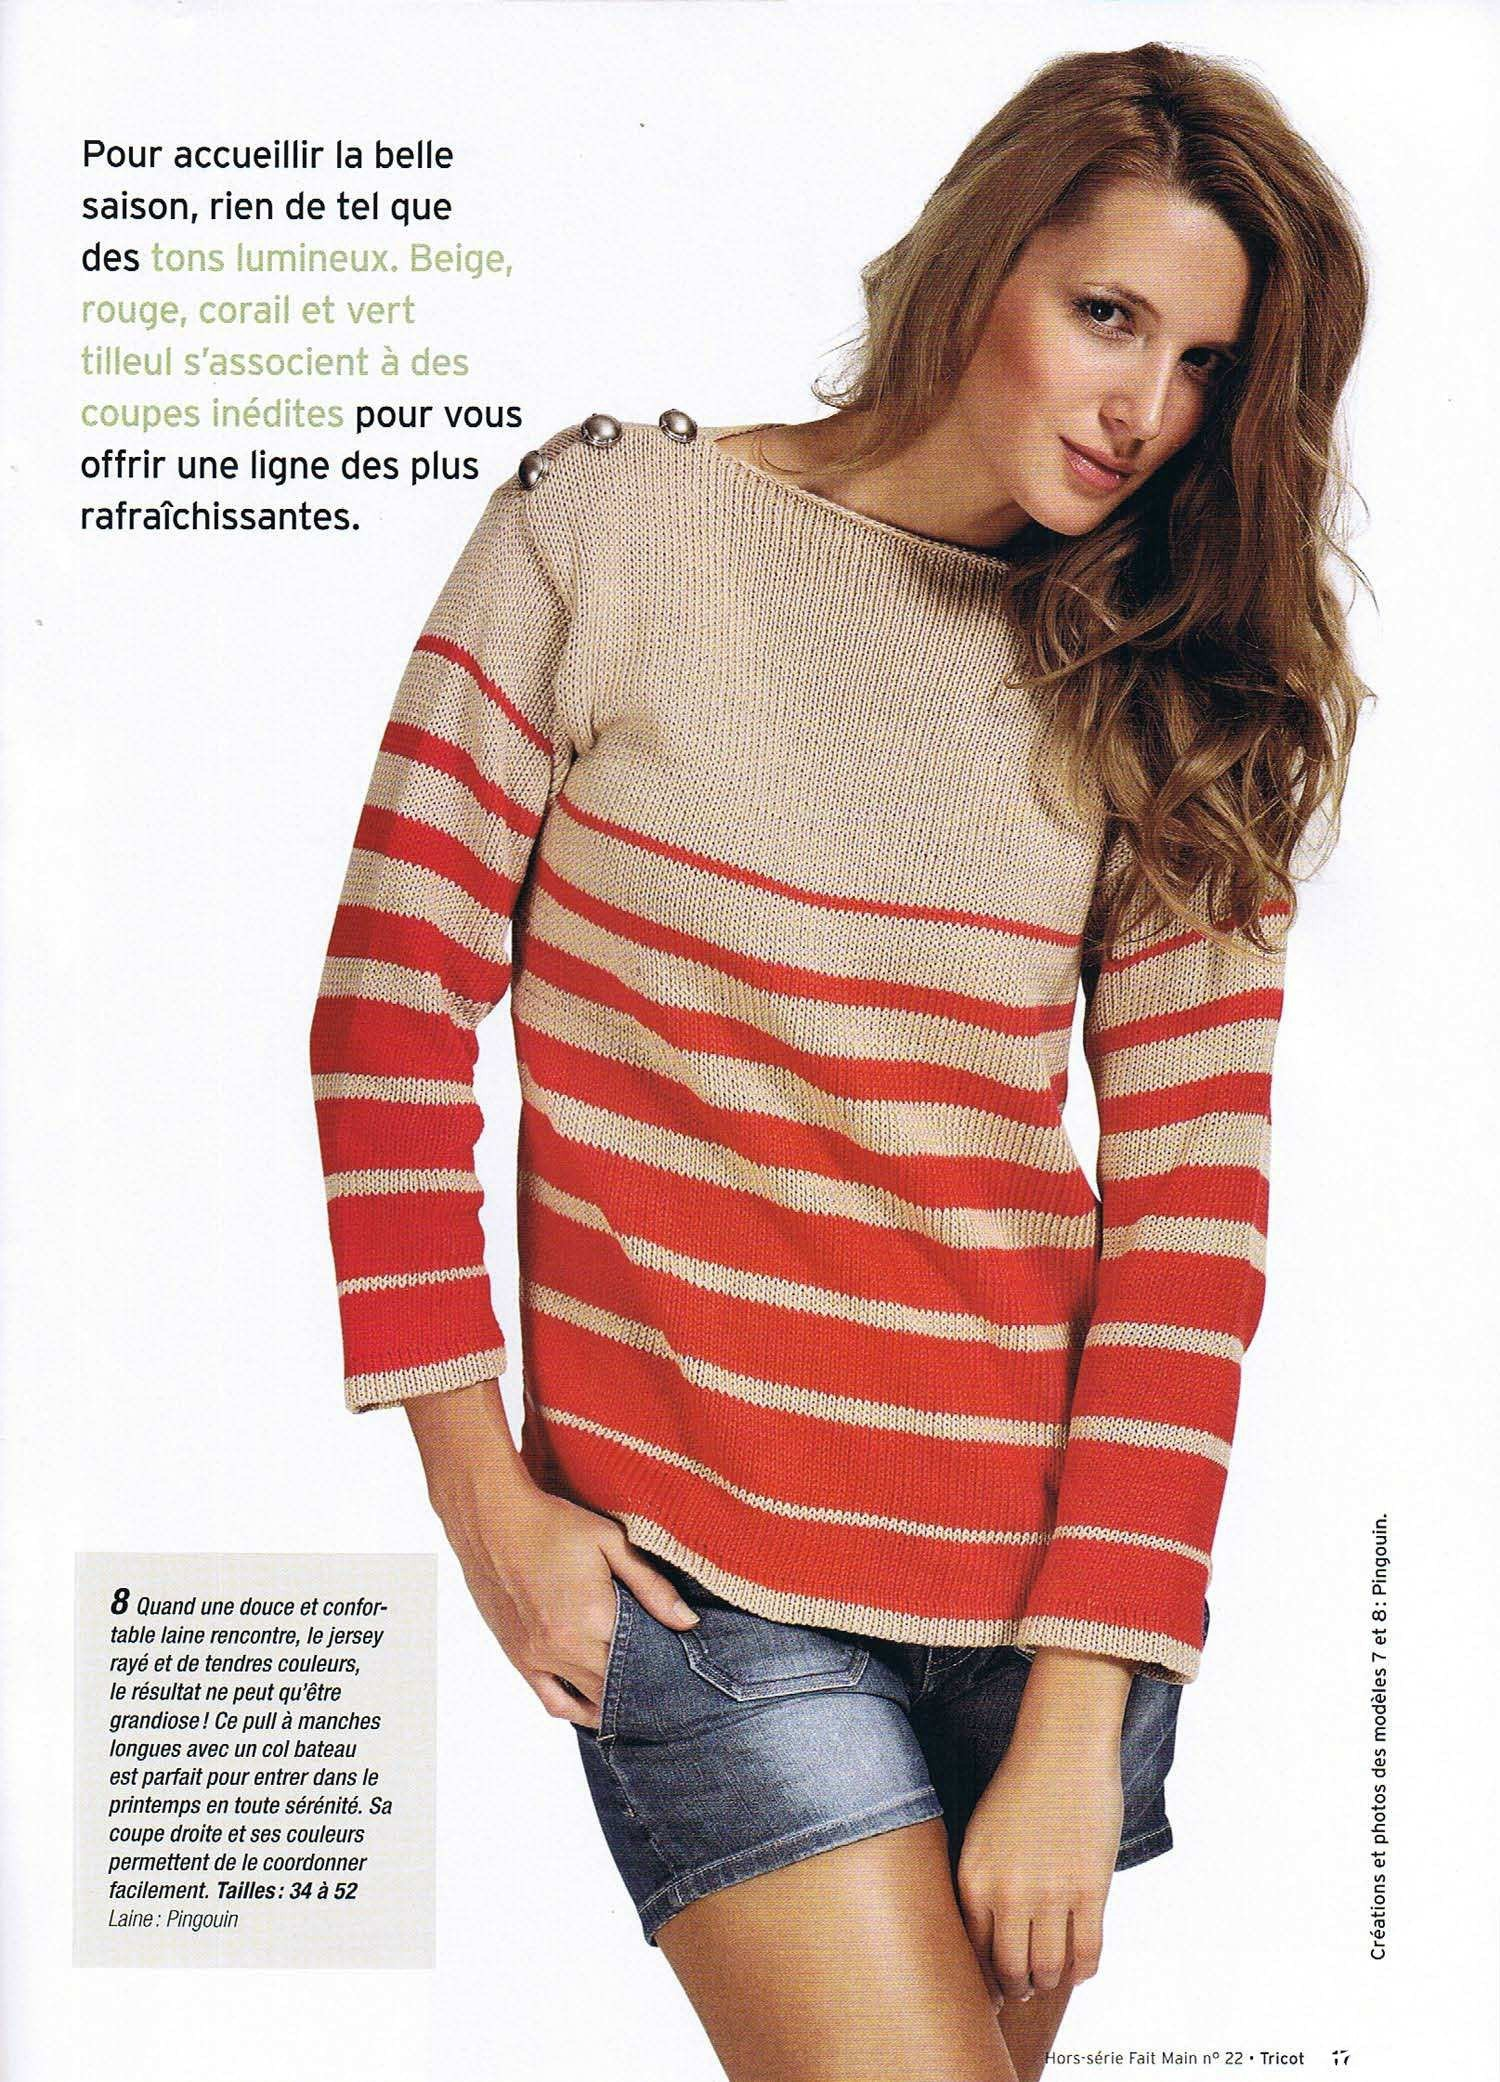 FAMILLE-FAITMAINTRICOT-HS22_page10_image1.jpg